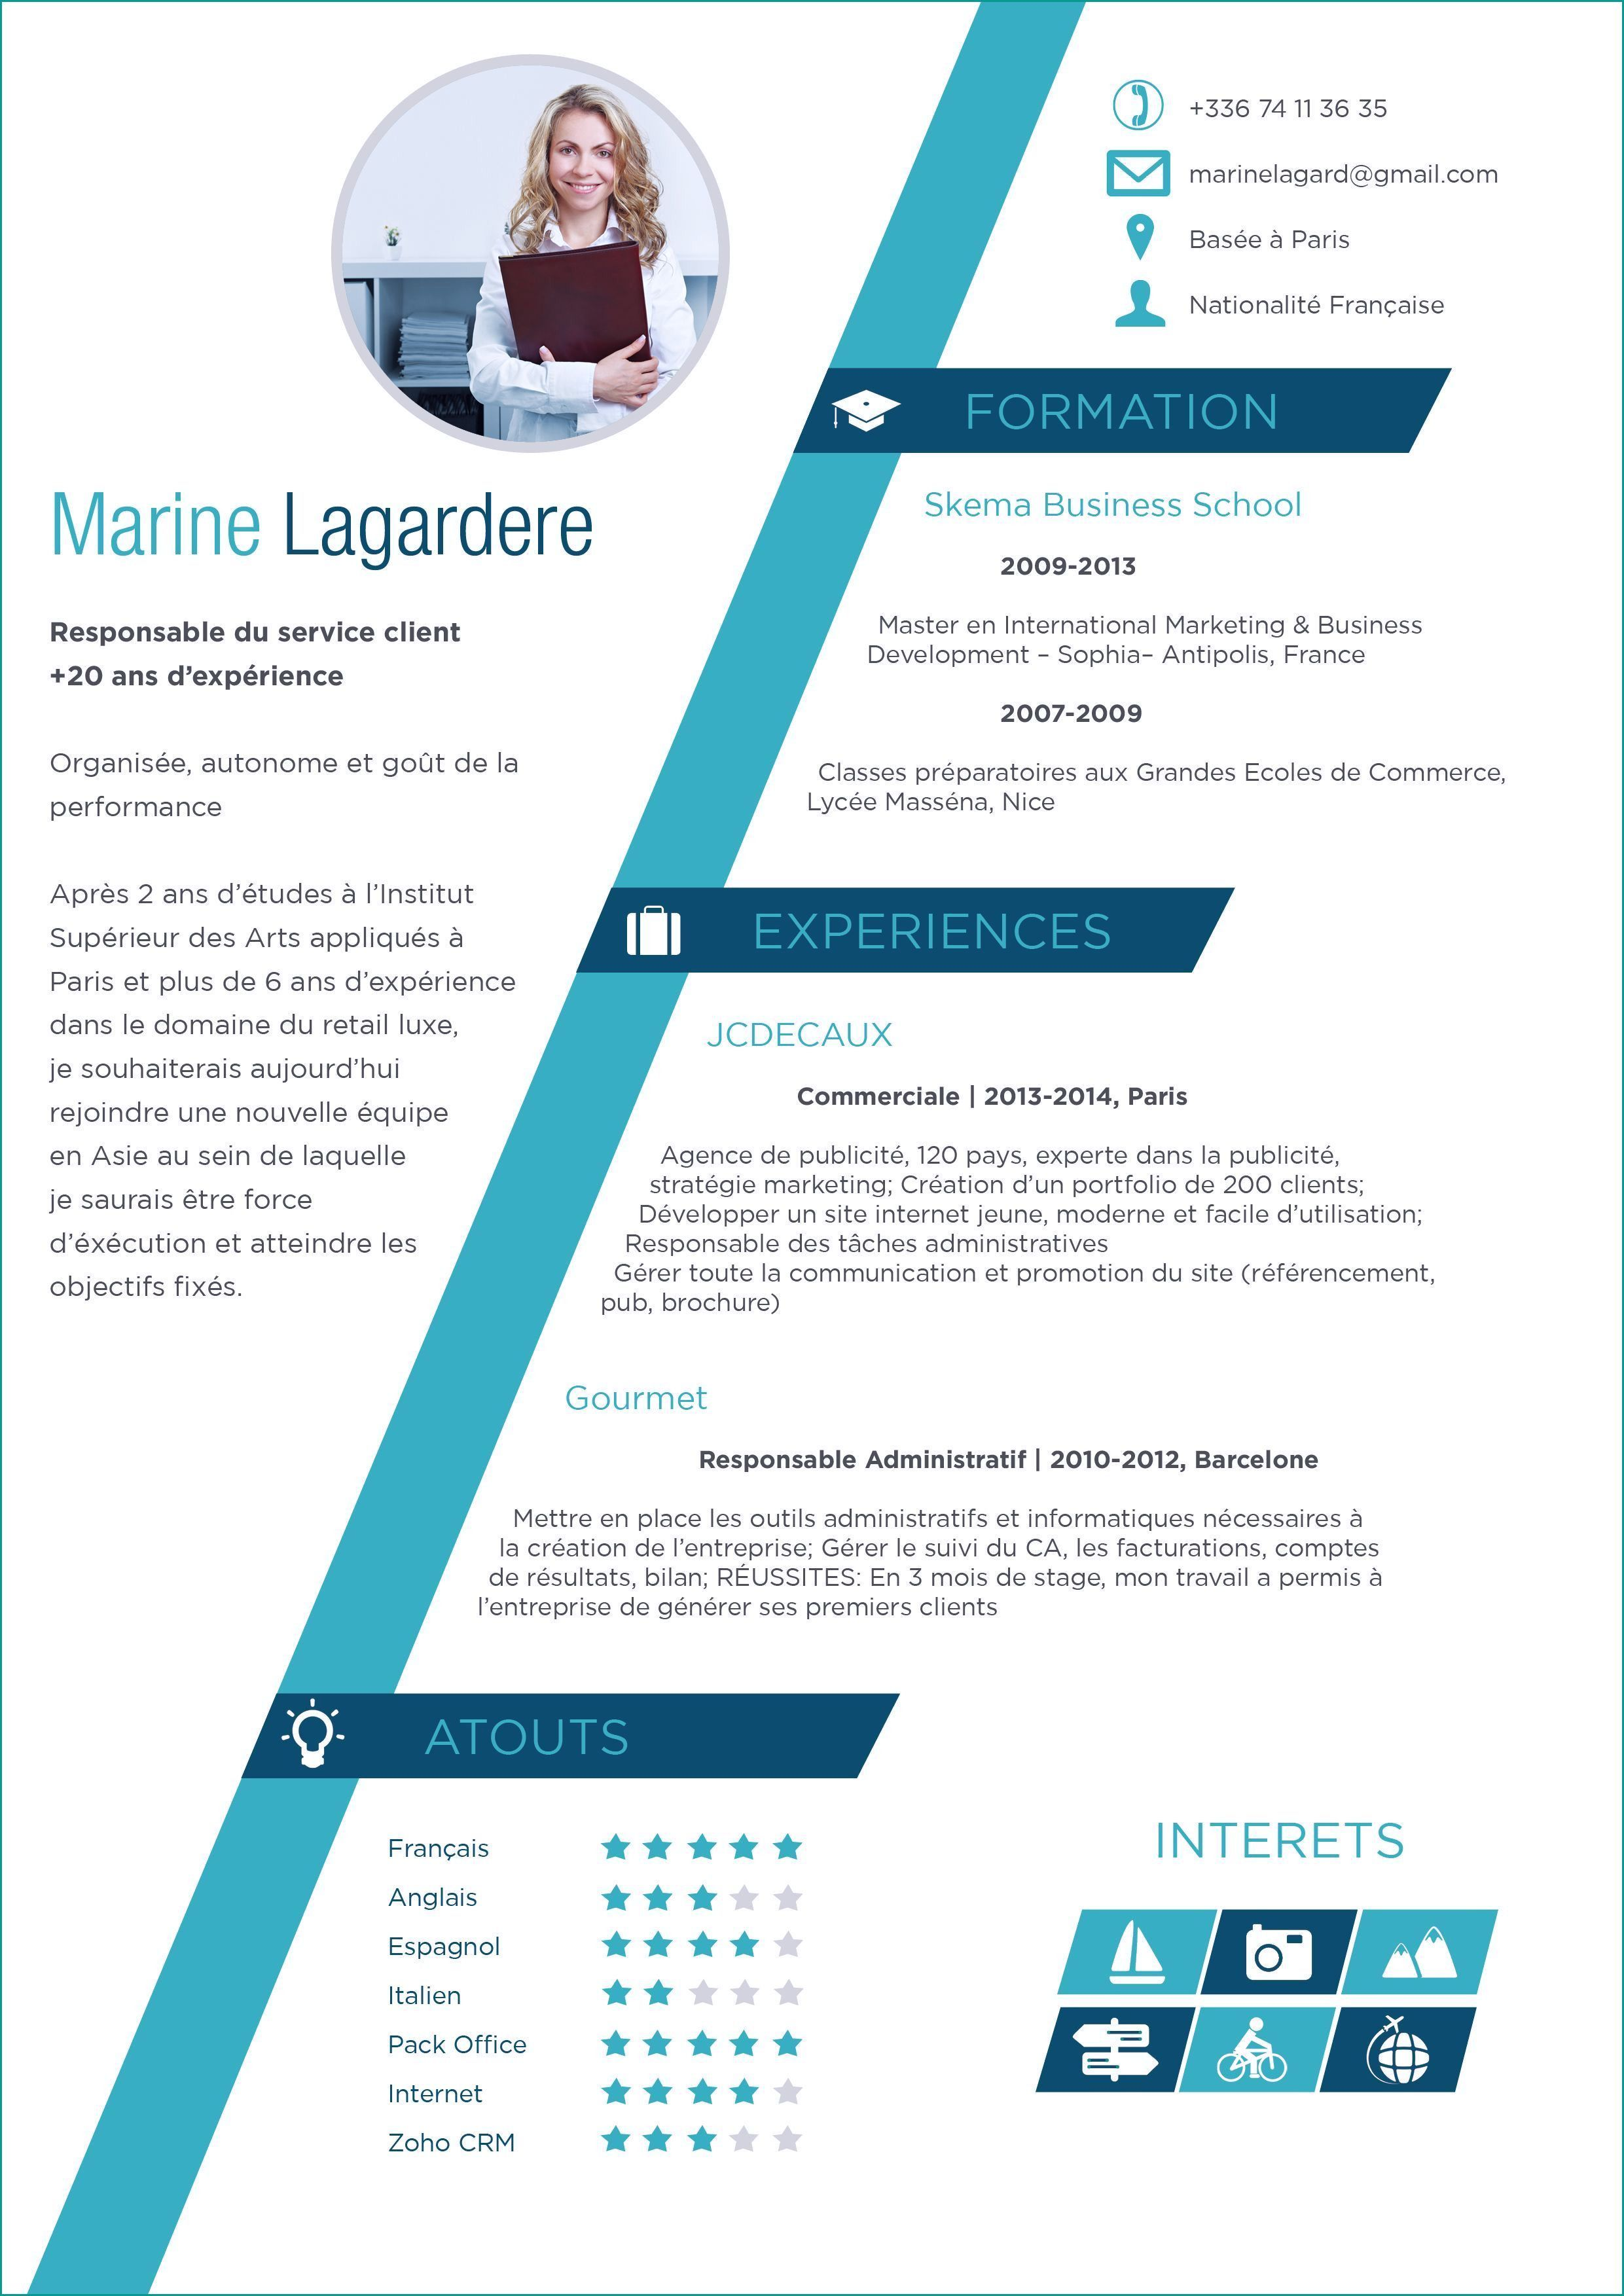 Resume Examples by Industry and Job Title Resume design